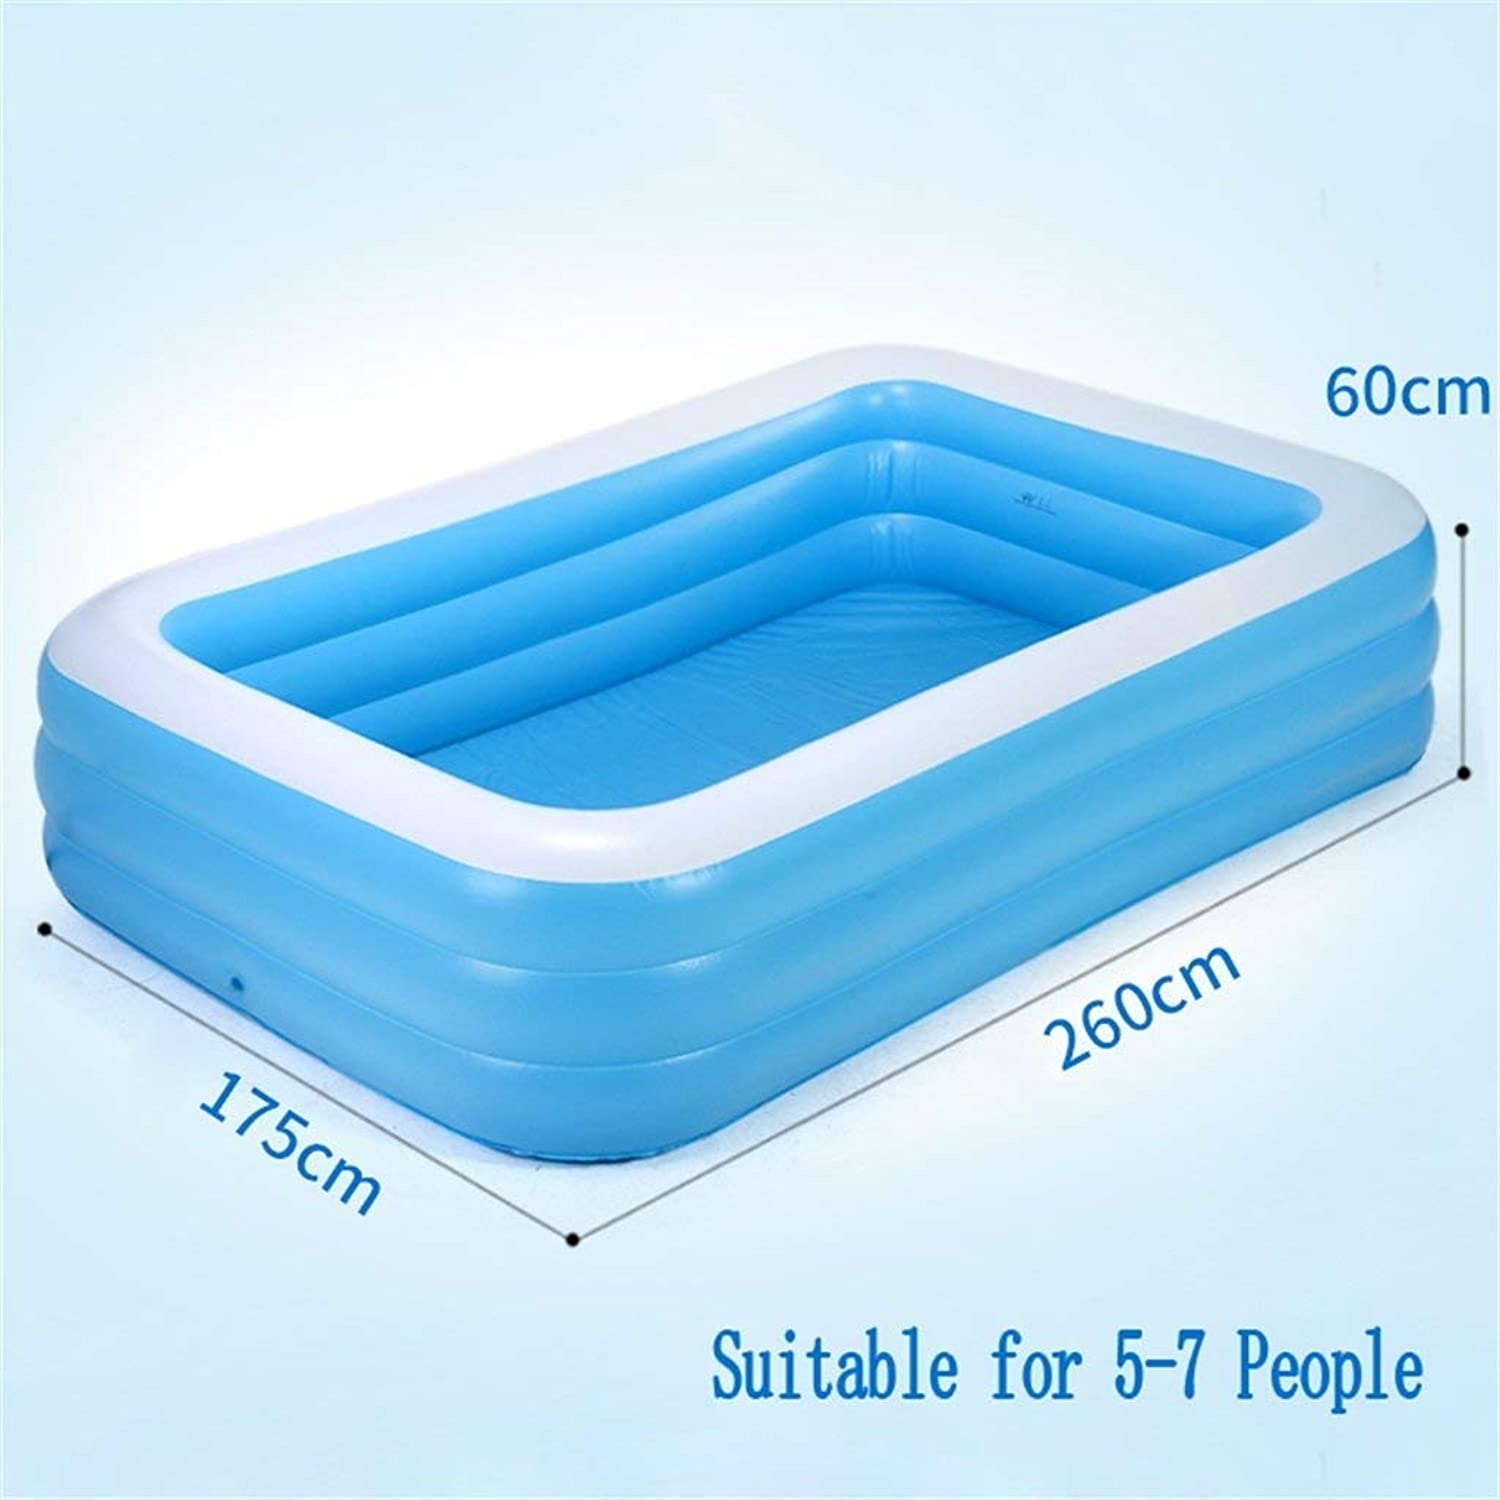 YUANY INFLATABLE BATH HOME Large Inflatable Pool Pool Pool Kids Sea Pool Suitable for 5-7 Persons Bathtub